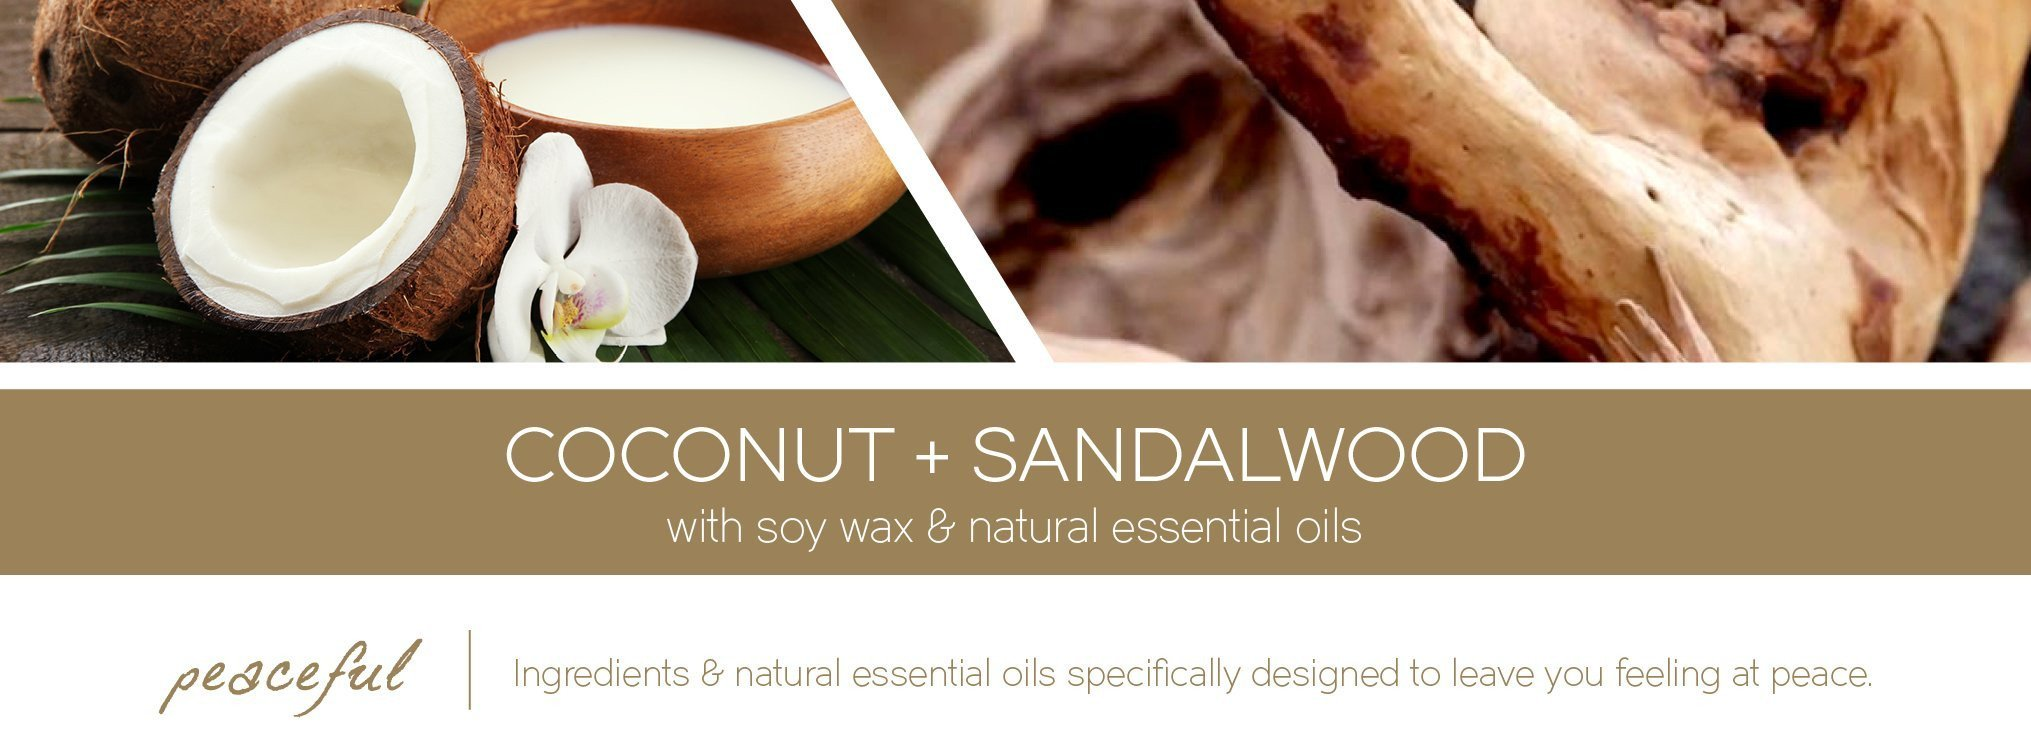 Coconut Sandalwood Fragrance